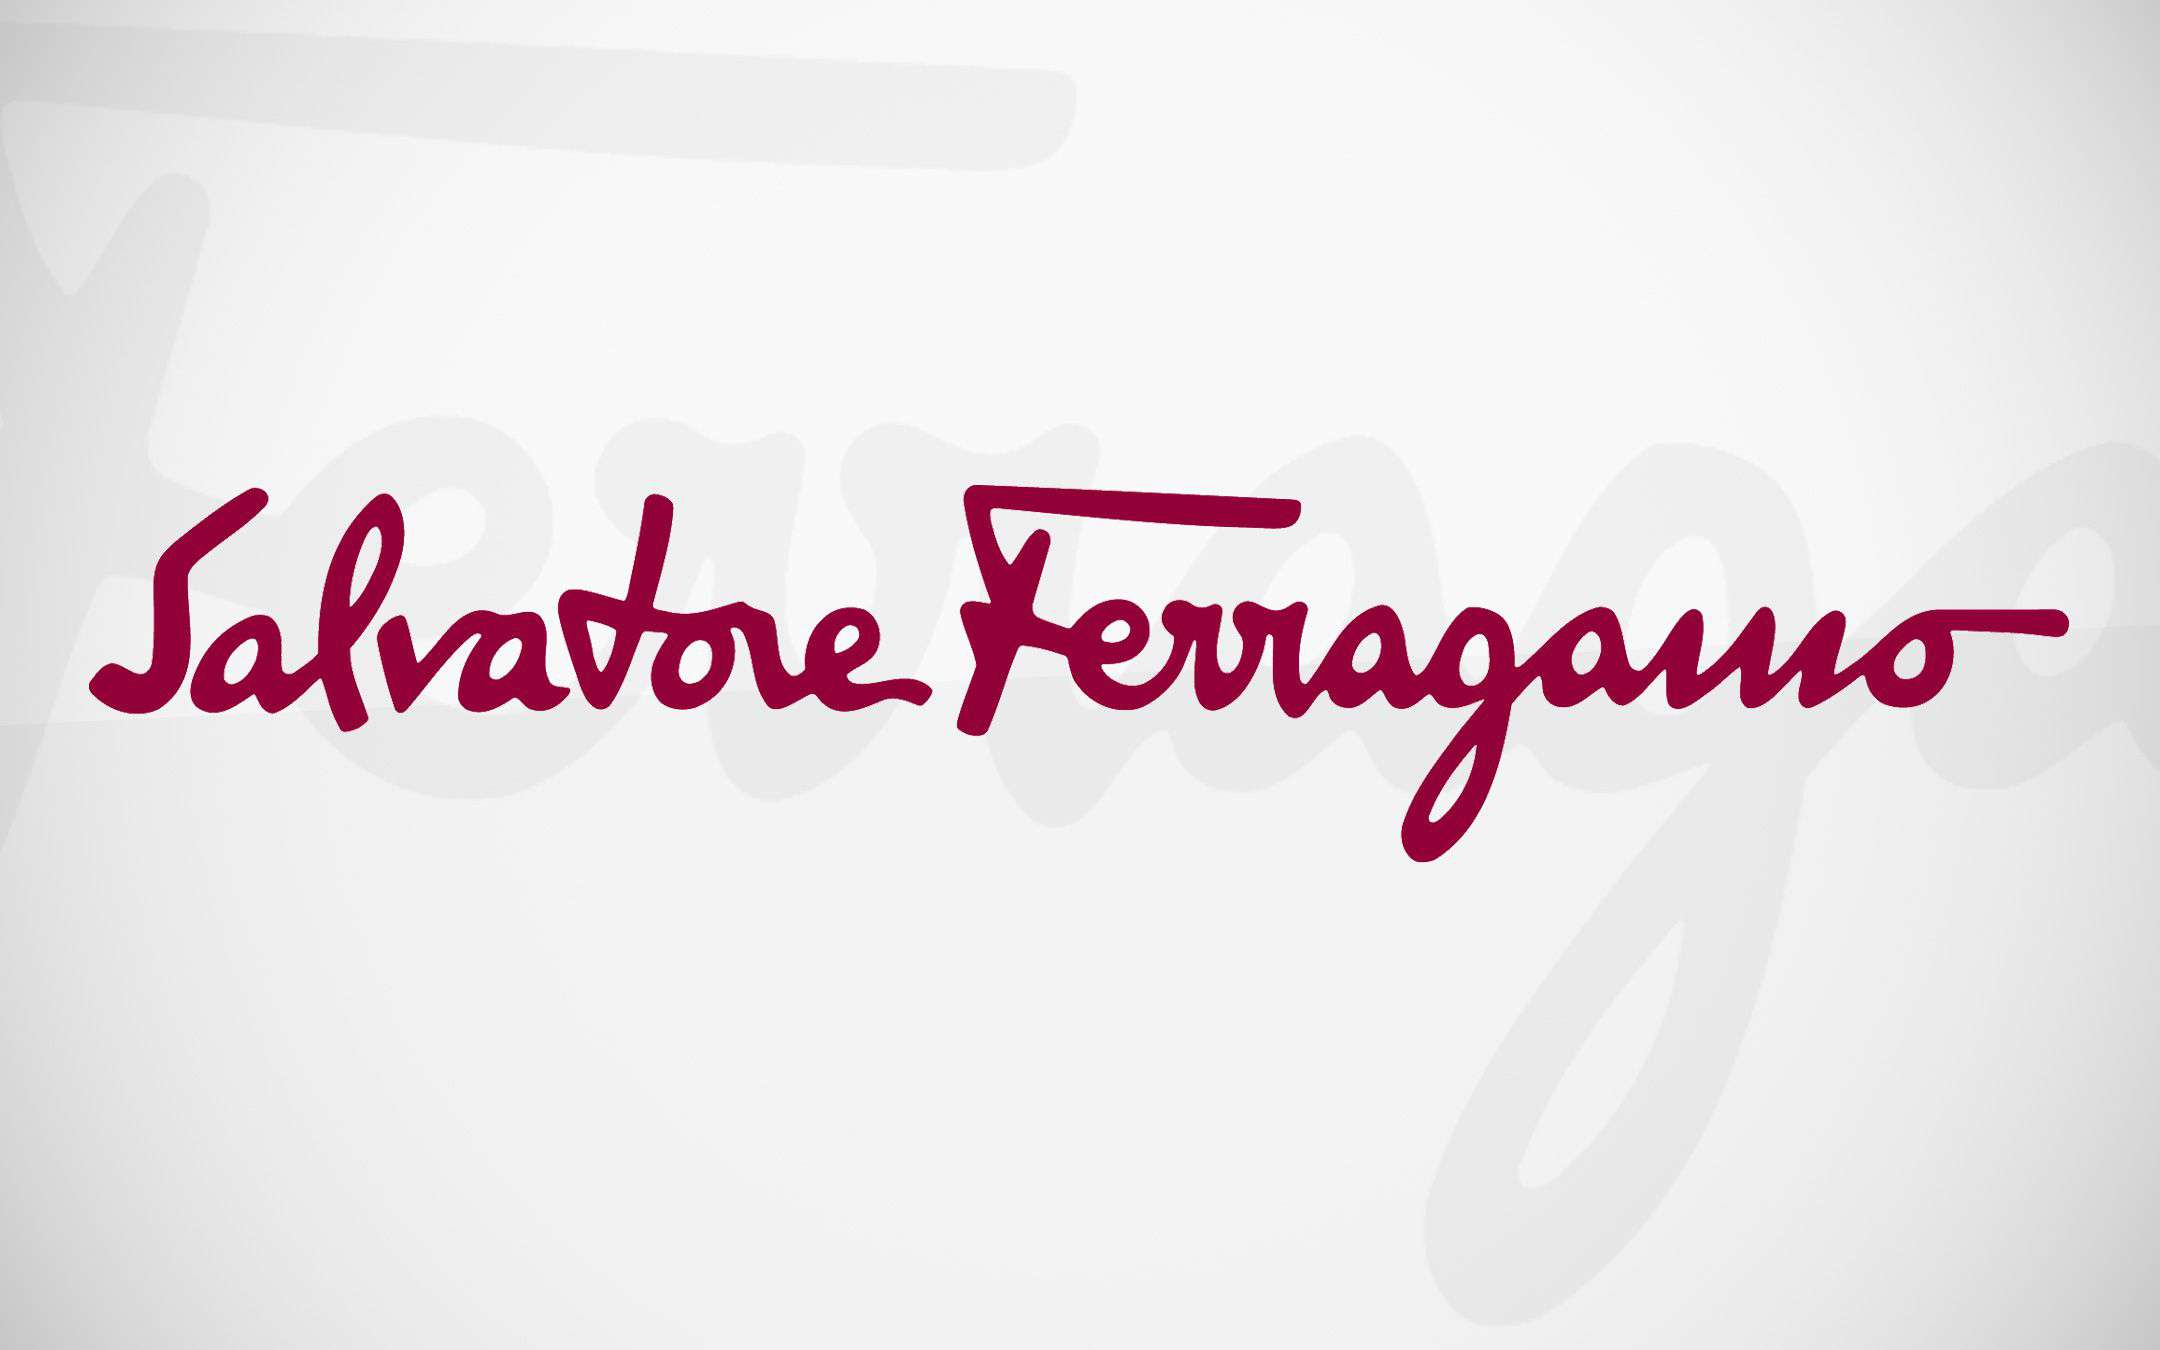 Amazon and Ferragamo together against counterfeiting